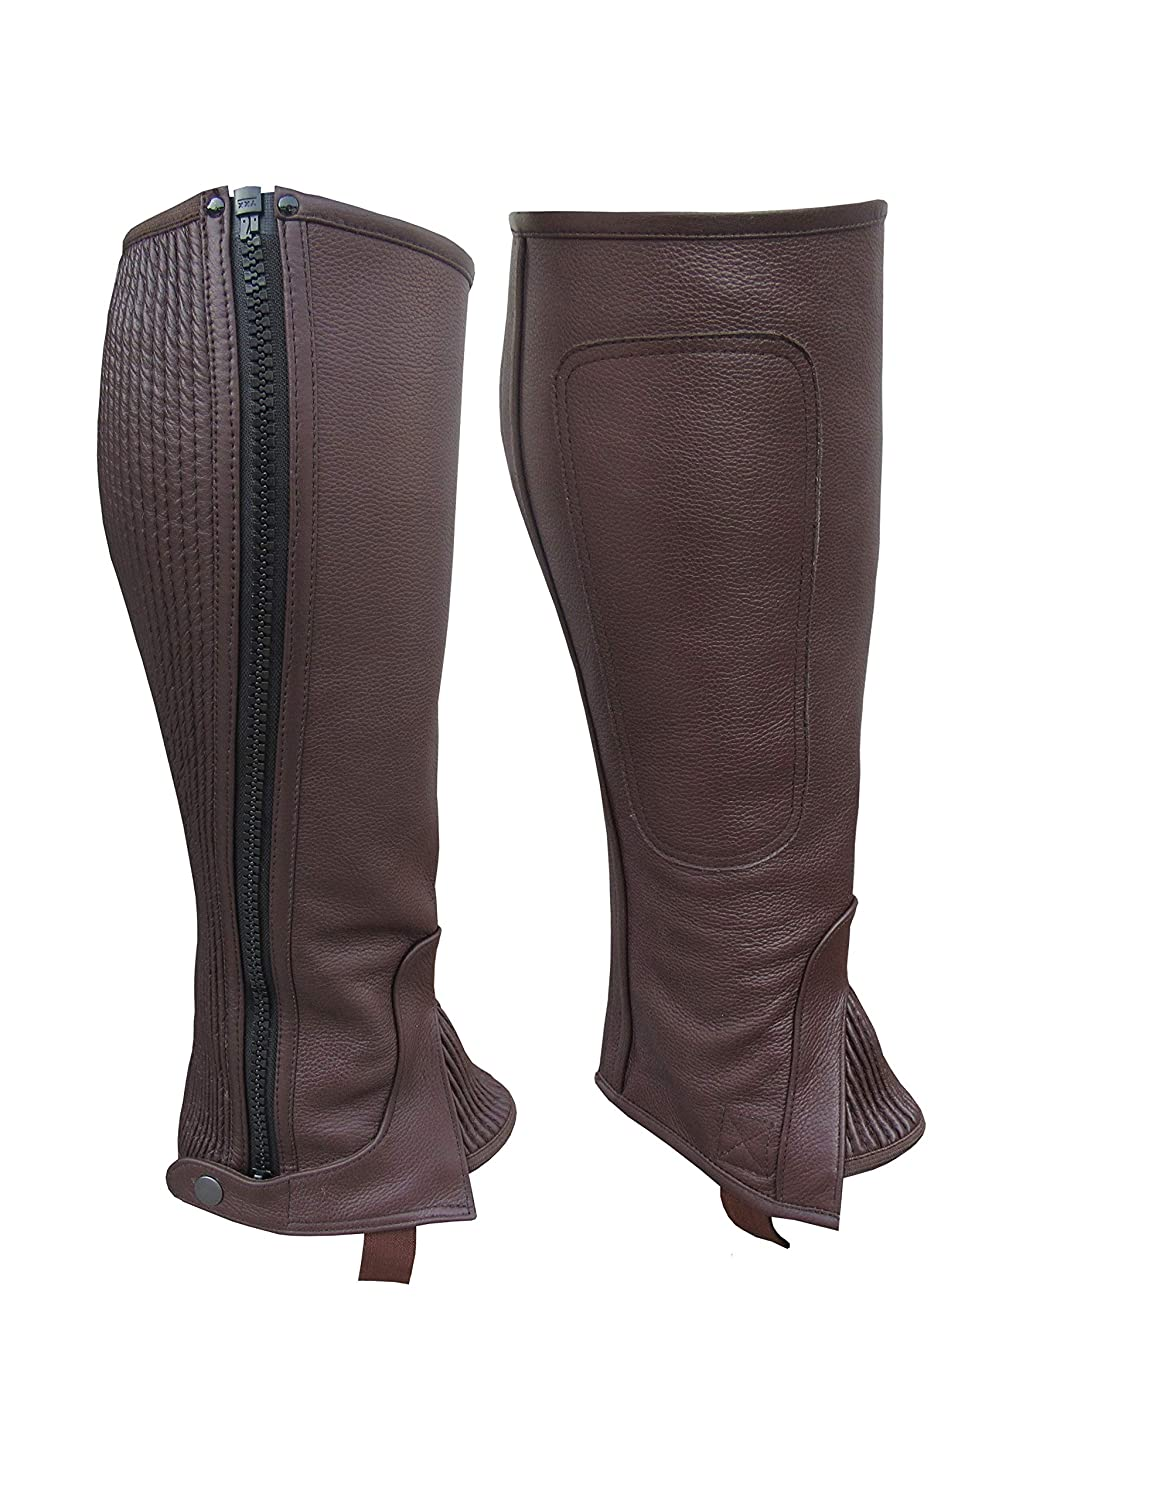 A/&H Apparel Unisex Adult Leather Half Chaps Black and Brown